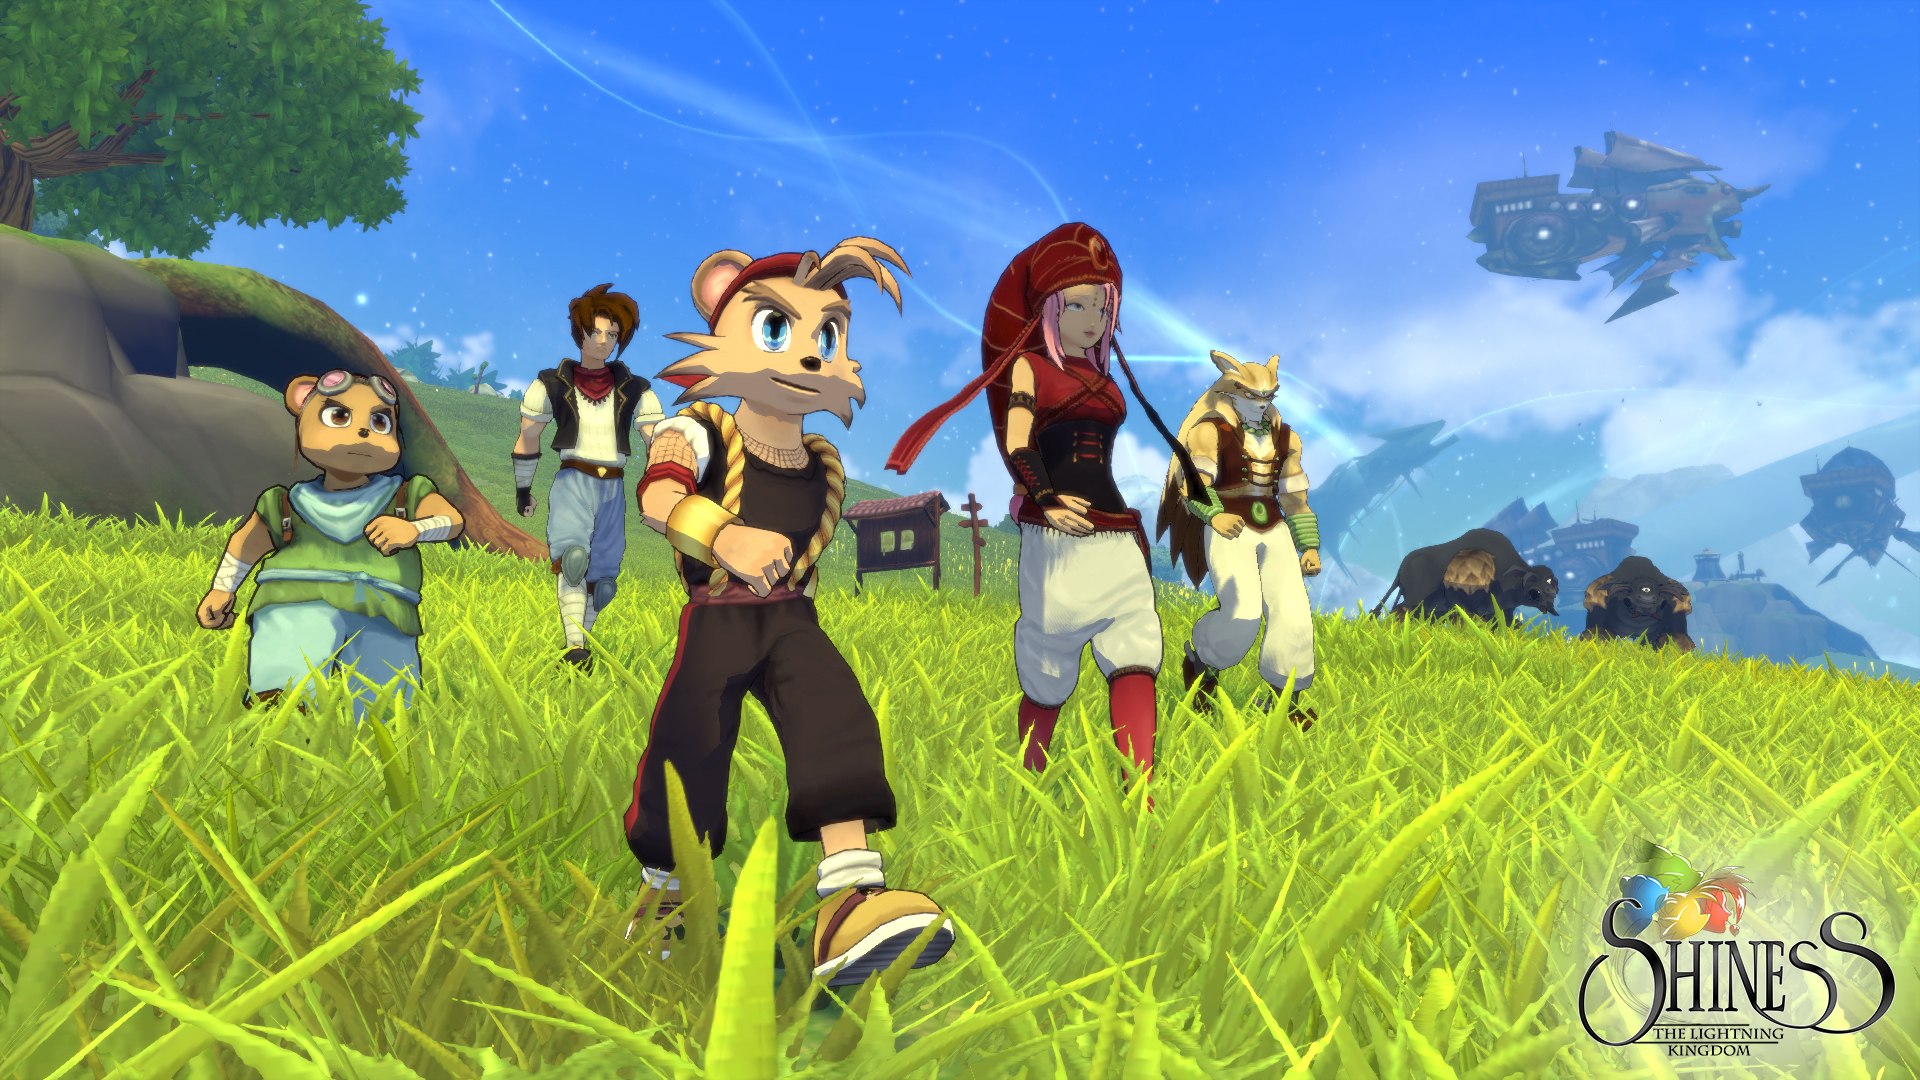 Indie RPG Shiness Looks Great In Debut Gameplay Trailer